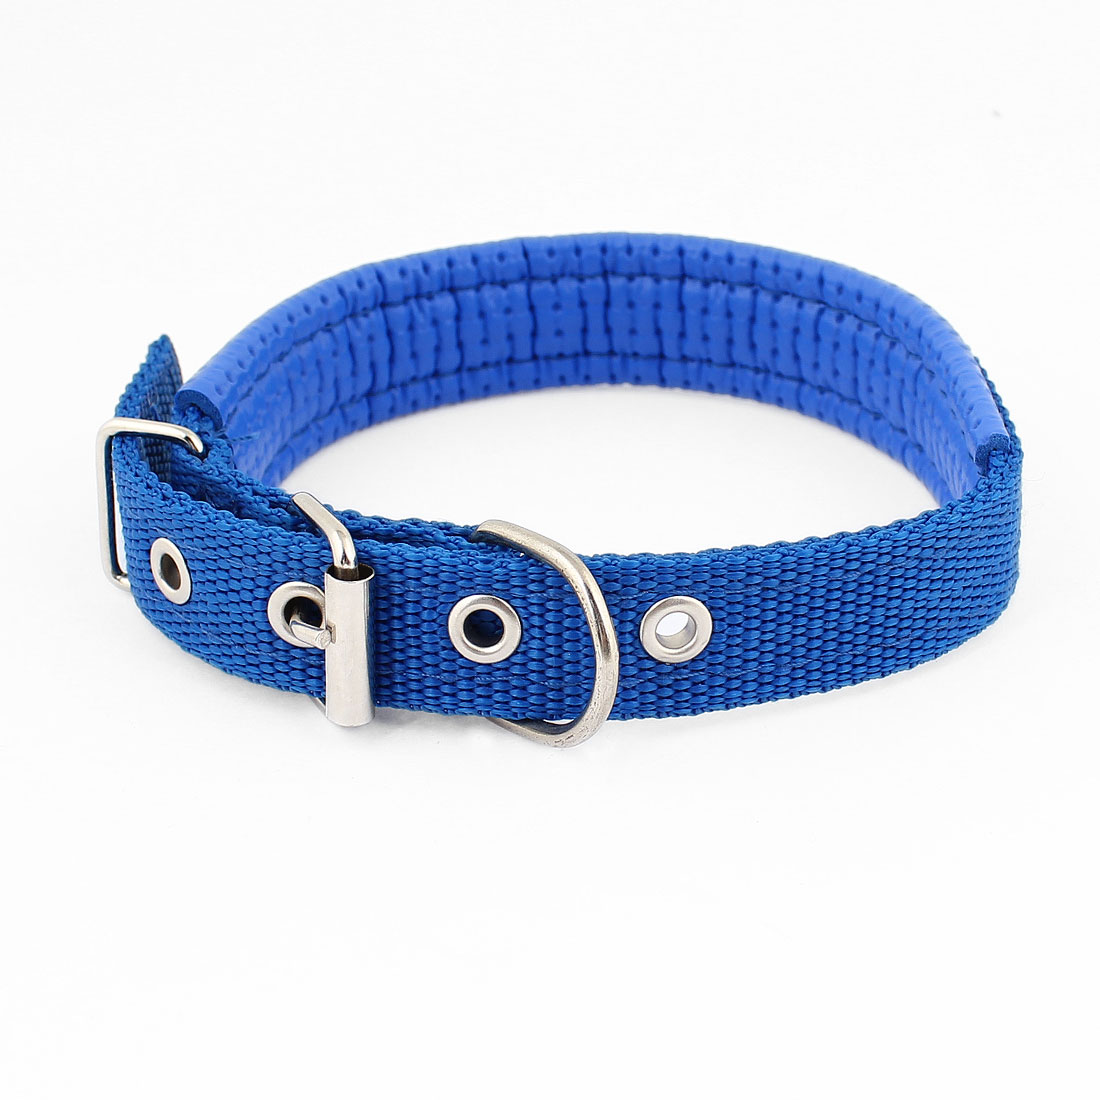 "Single Prong Buckle Adjustable Nylon Pet Dog Doggie Collar Necklace Blue 1"" Wide"